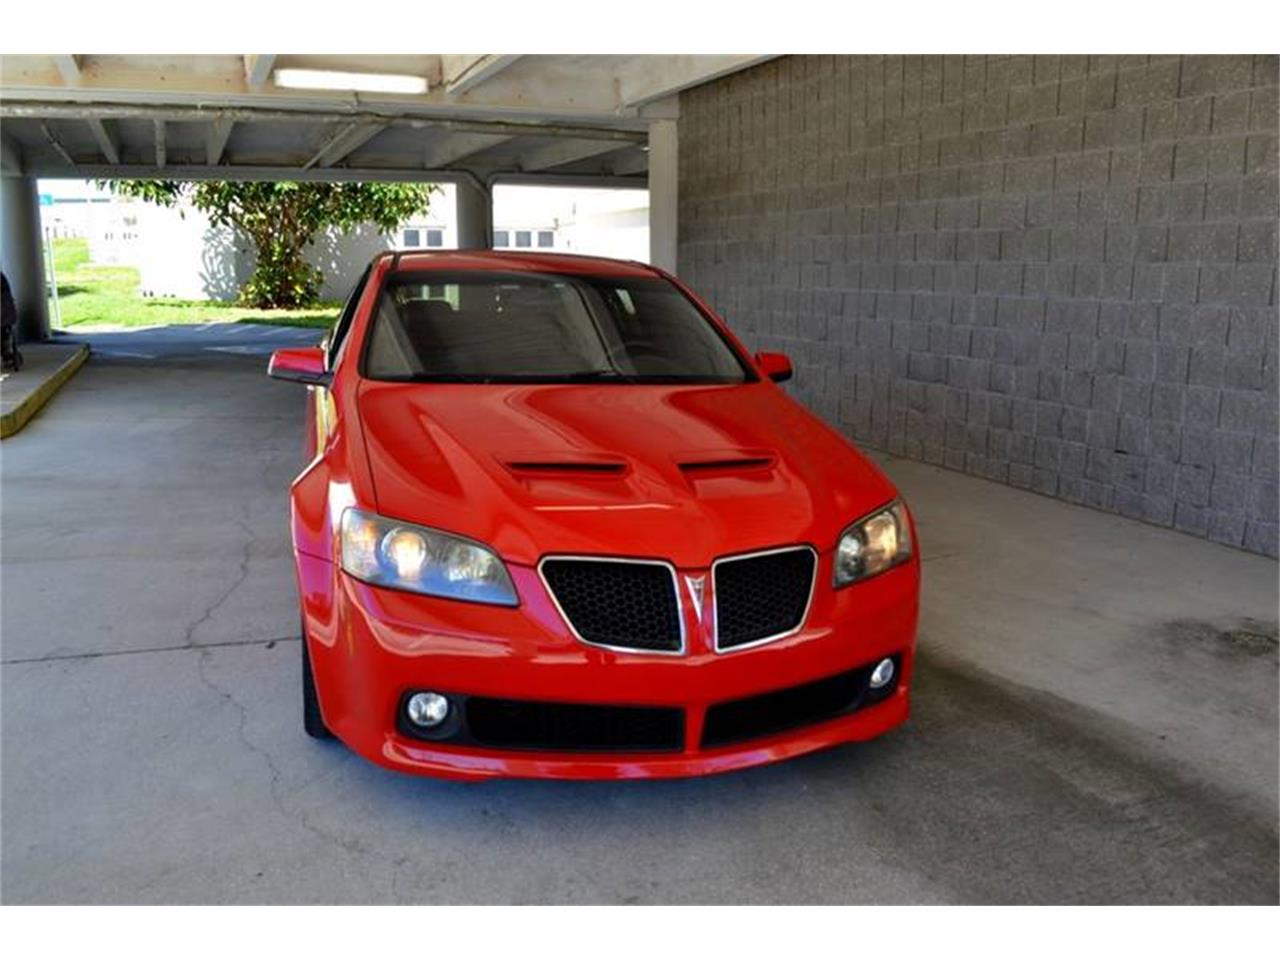 2009 Pontiac G8 for sale in Clearwater, FL – photo 13